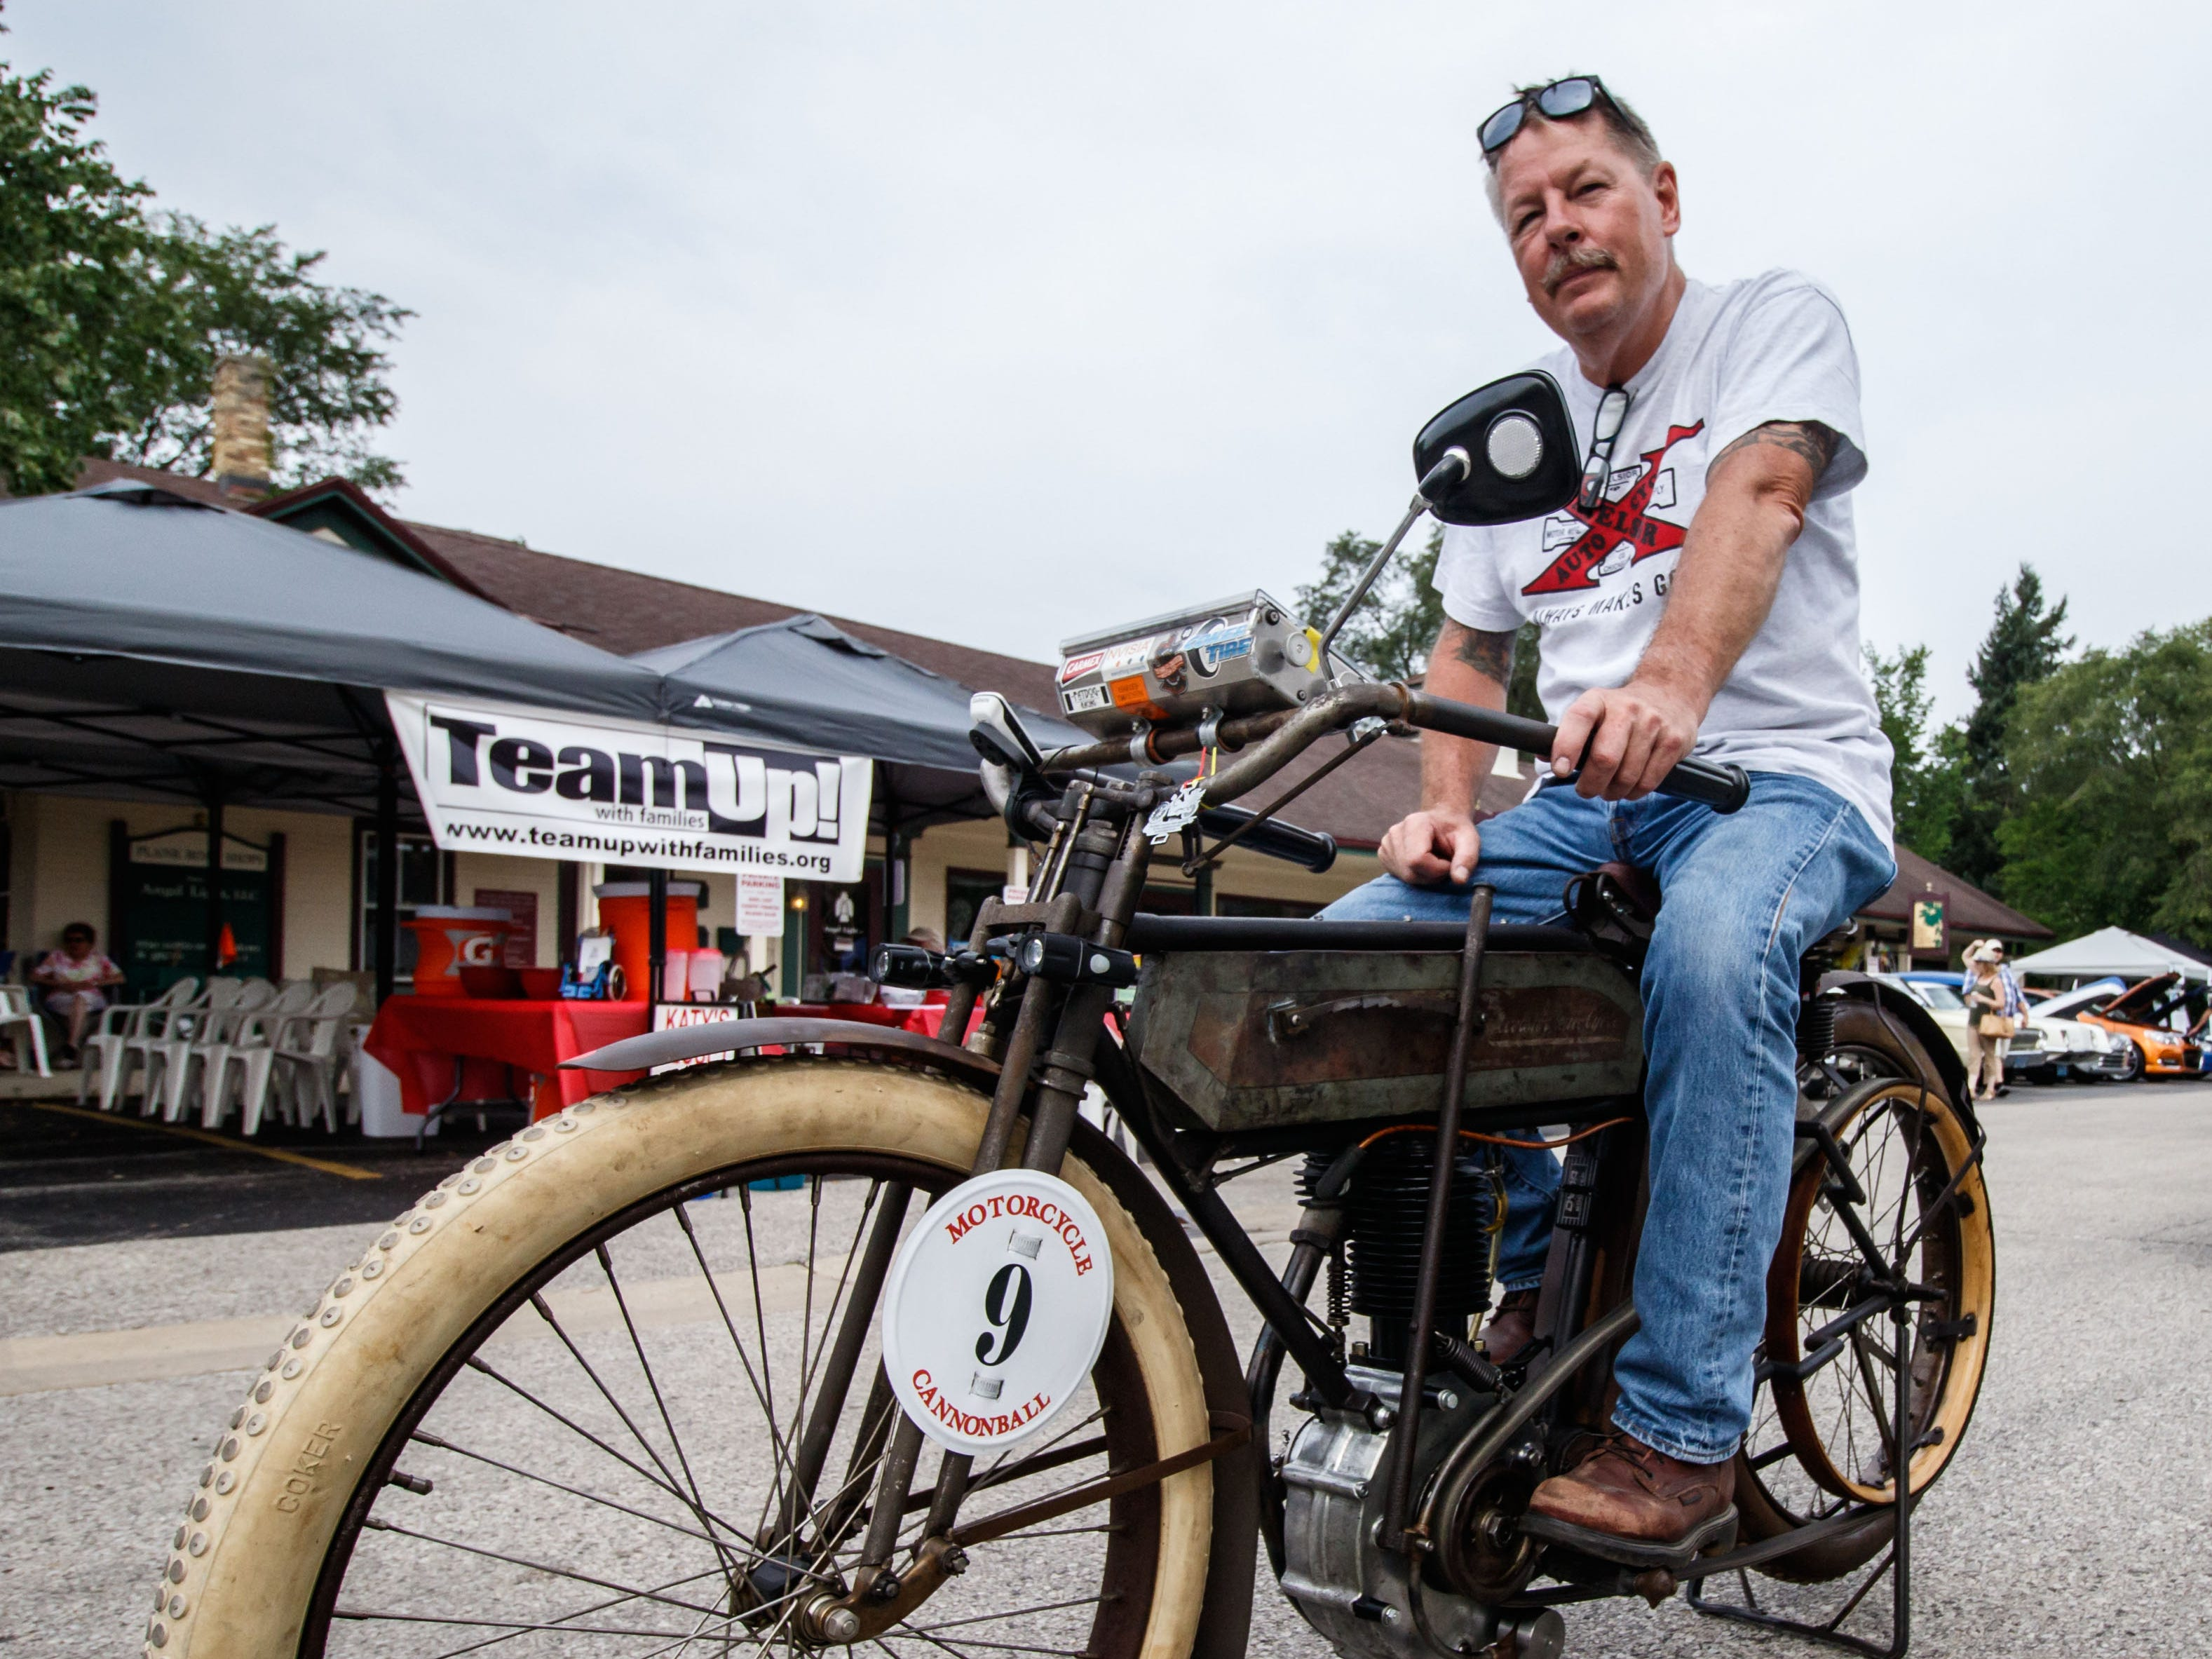 Chris Tribbey of Caledonia displays his 1911 Excelsior Model K Single motorcycle during the 6th annual Cruisin' the Grove street car and motorcycle show in downtown Elm Grove on Sunday, August 5, 2018. Tribbey will attempt to ride the 4 HP motorcycle more than 3,200 miles this fall in the Cannonball Endurance Event.